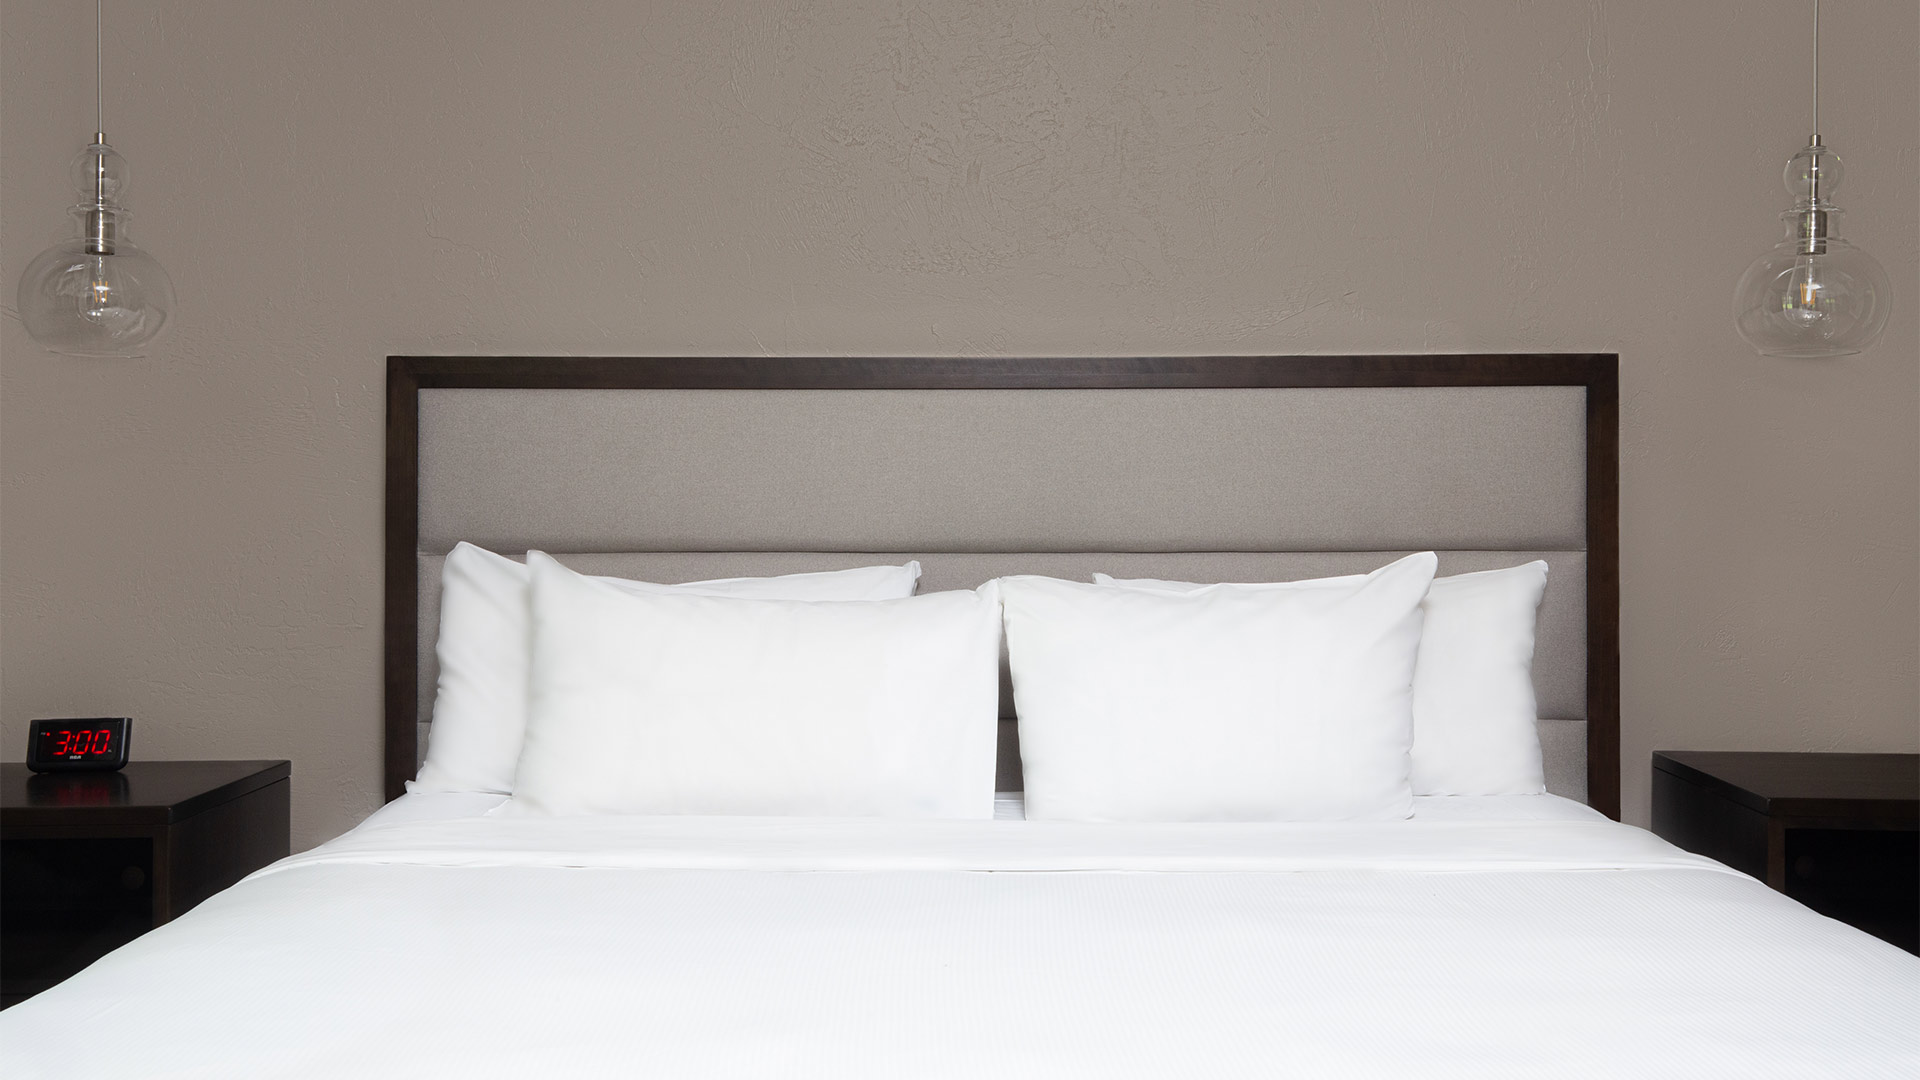 detail shot of a bed with all white linens and bed side tables on either side of the bed